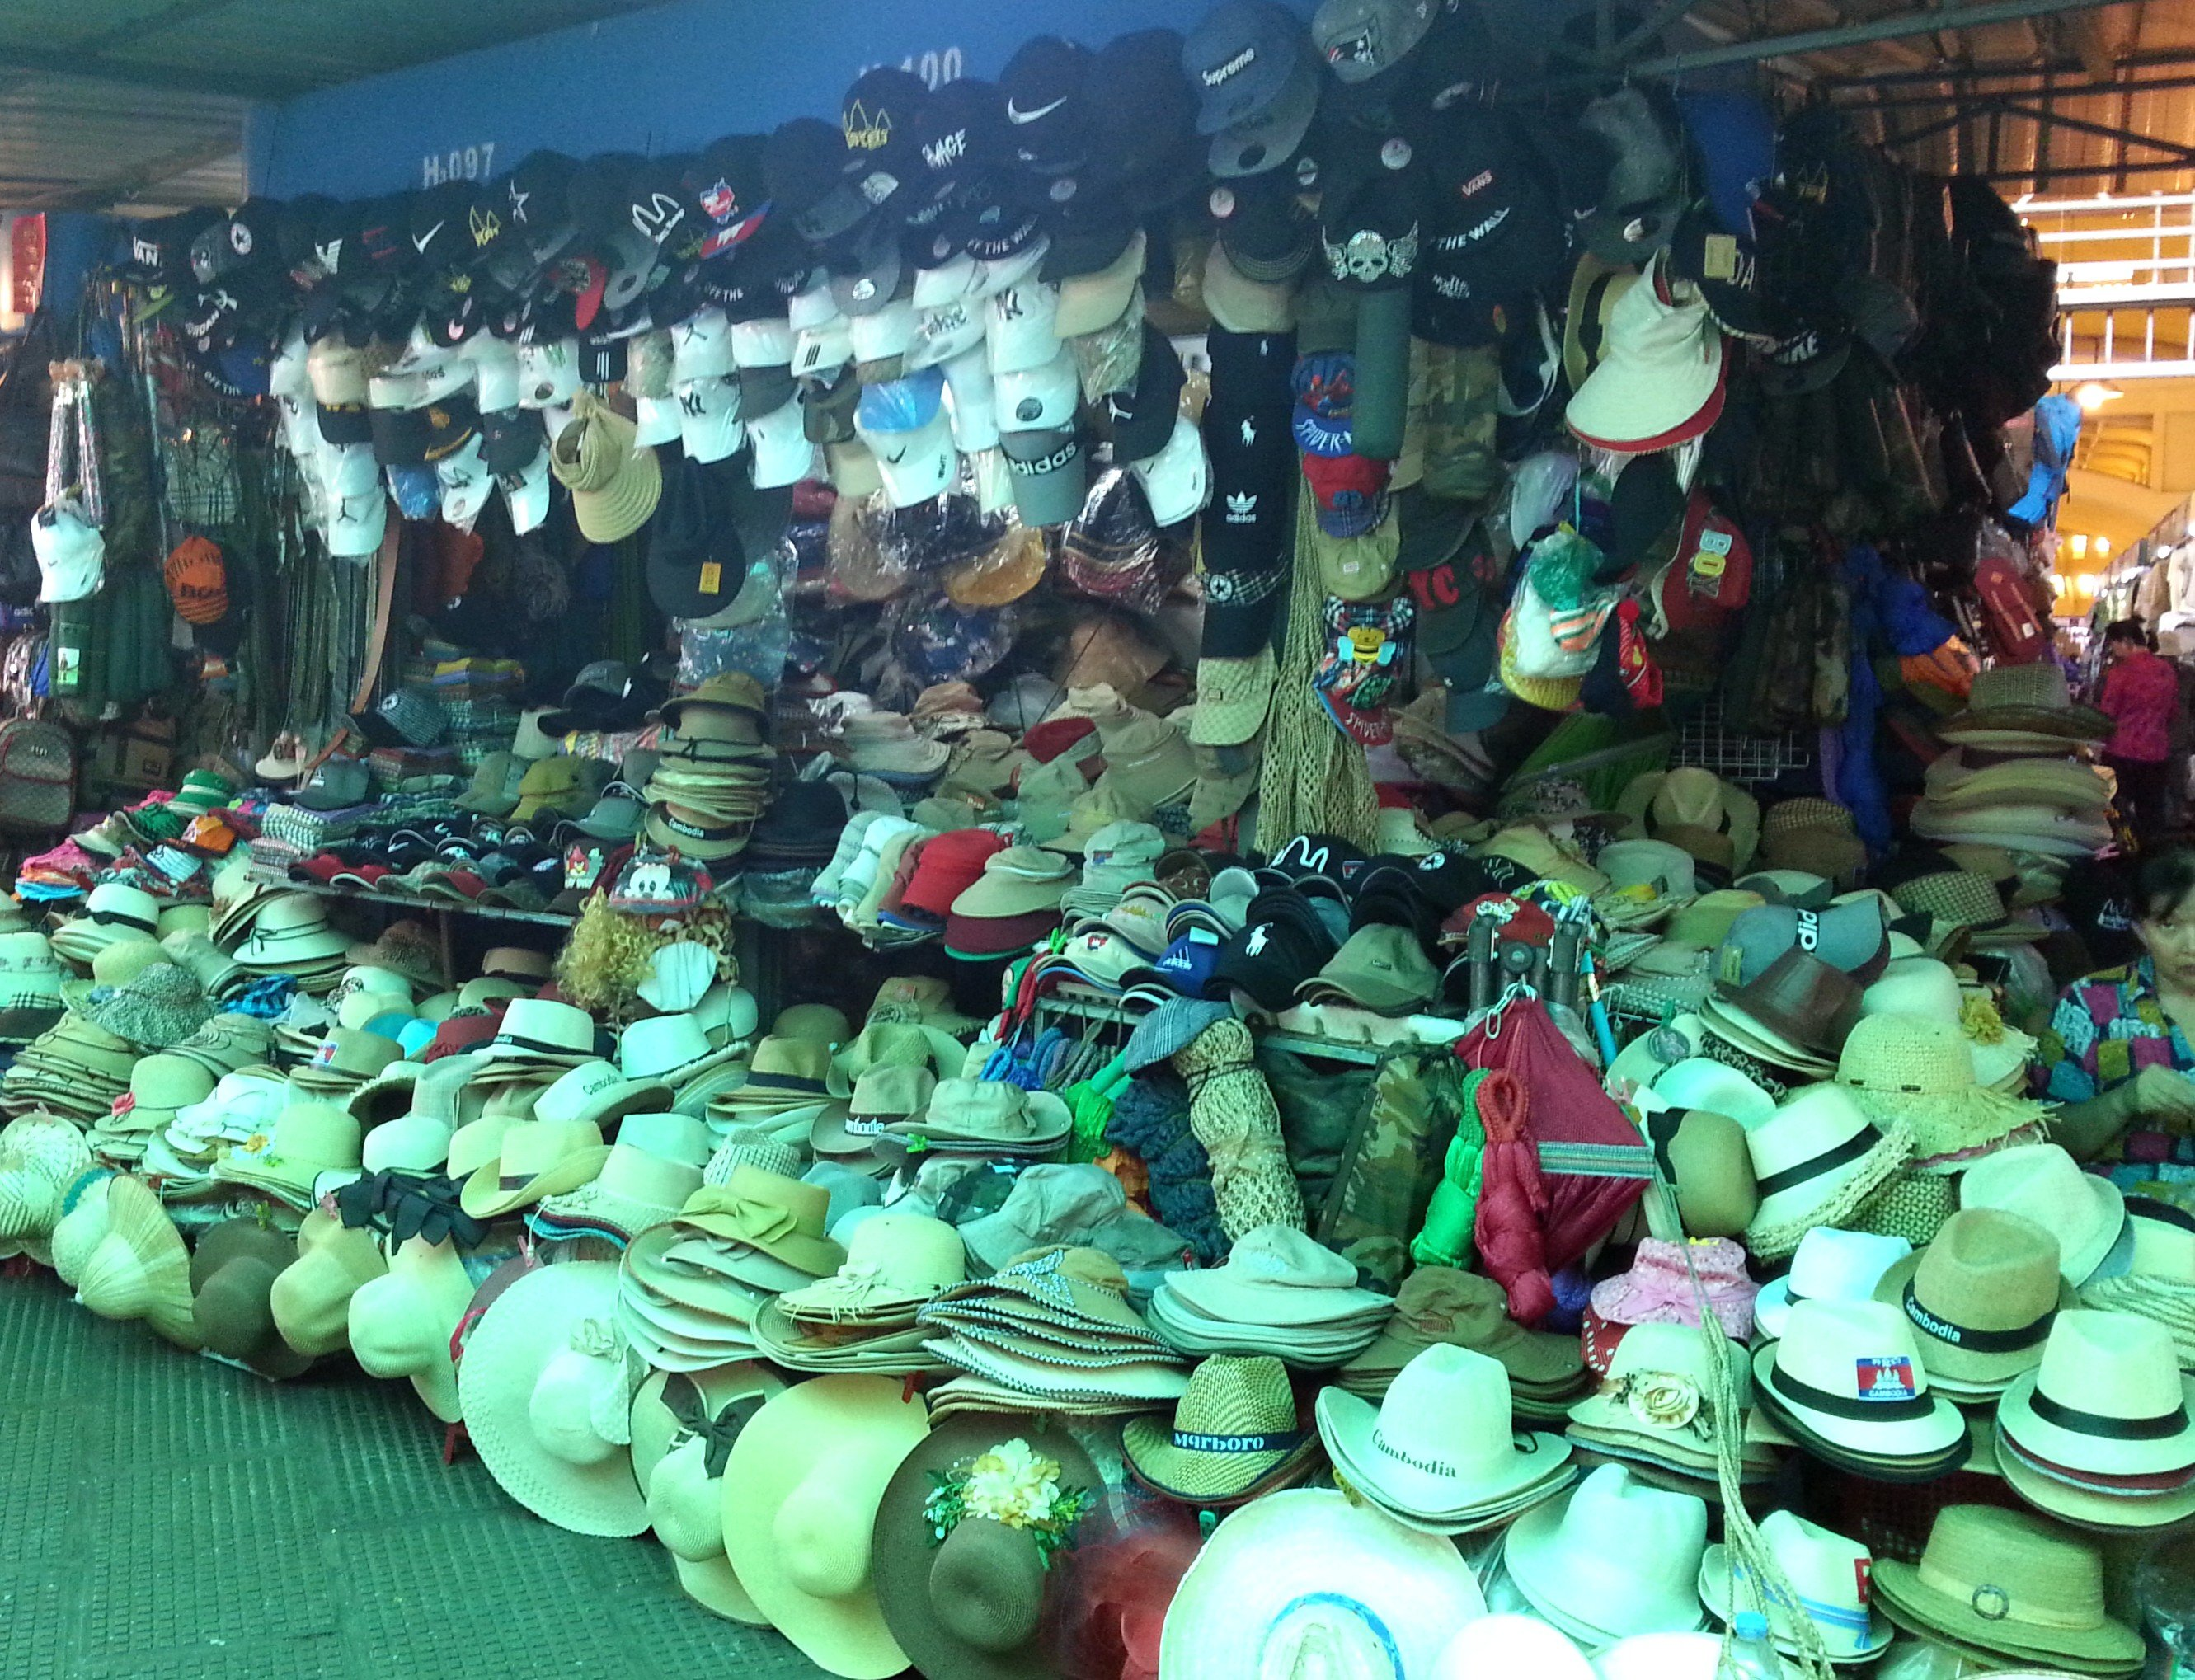 Chances are you will find a hat that fits